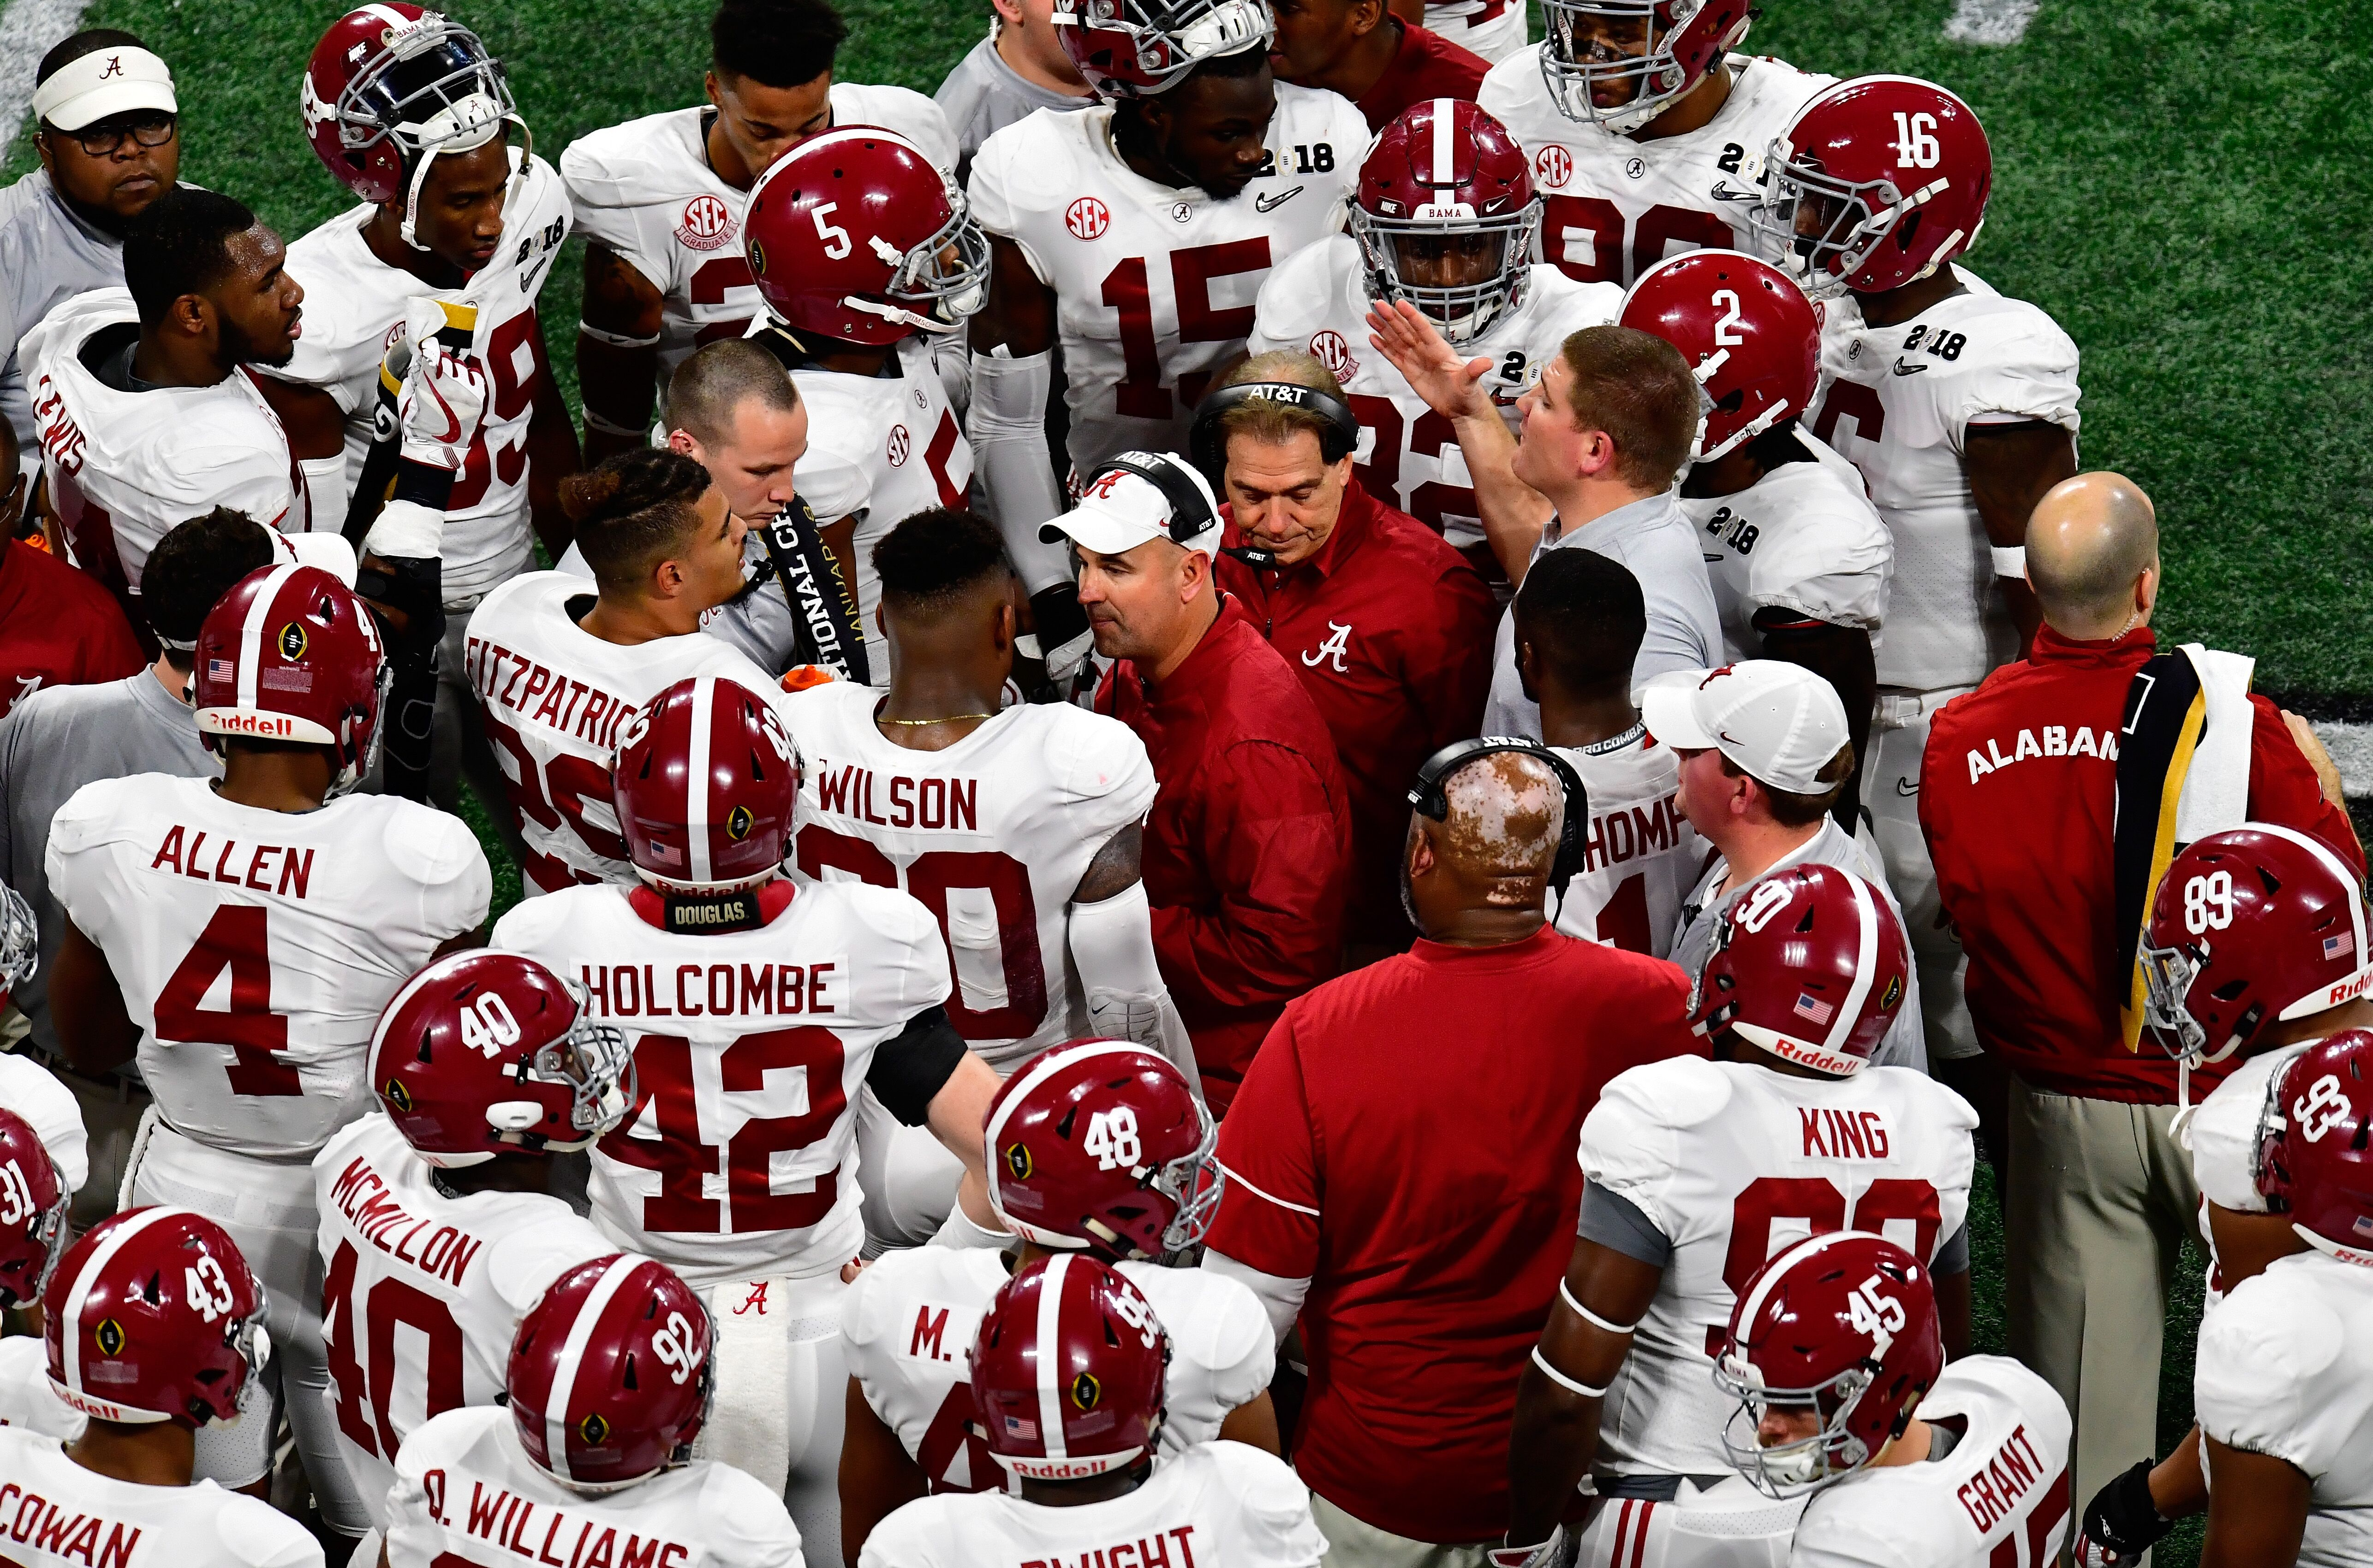 902751468-cfp-national-championship-presented-by-at.jpg